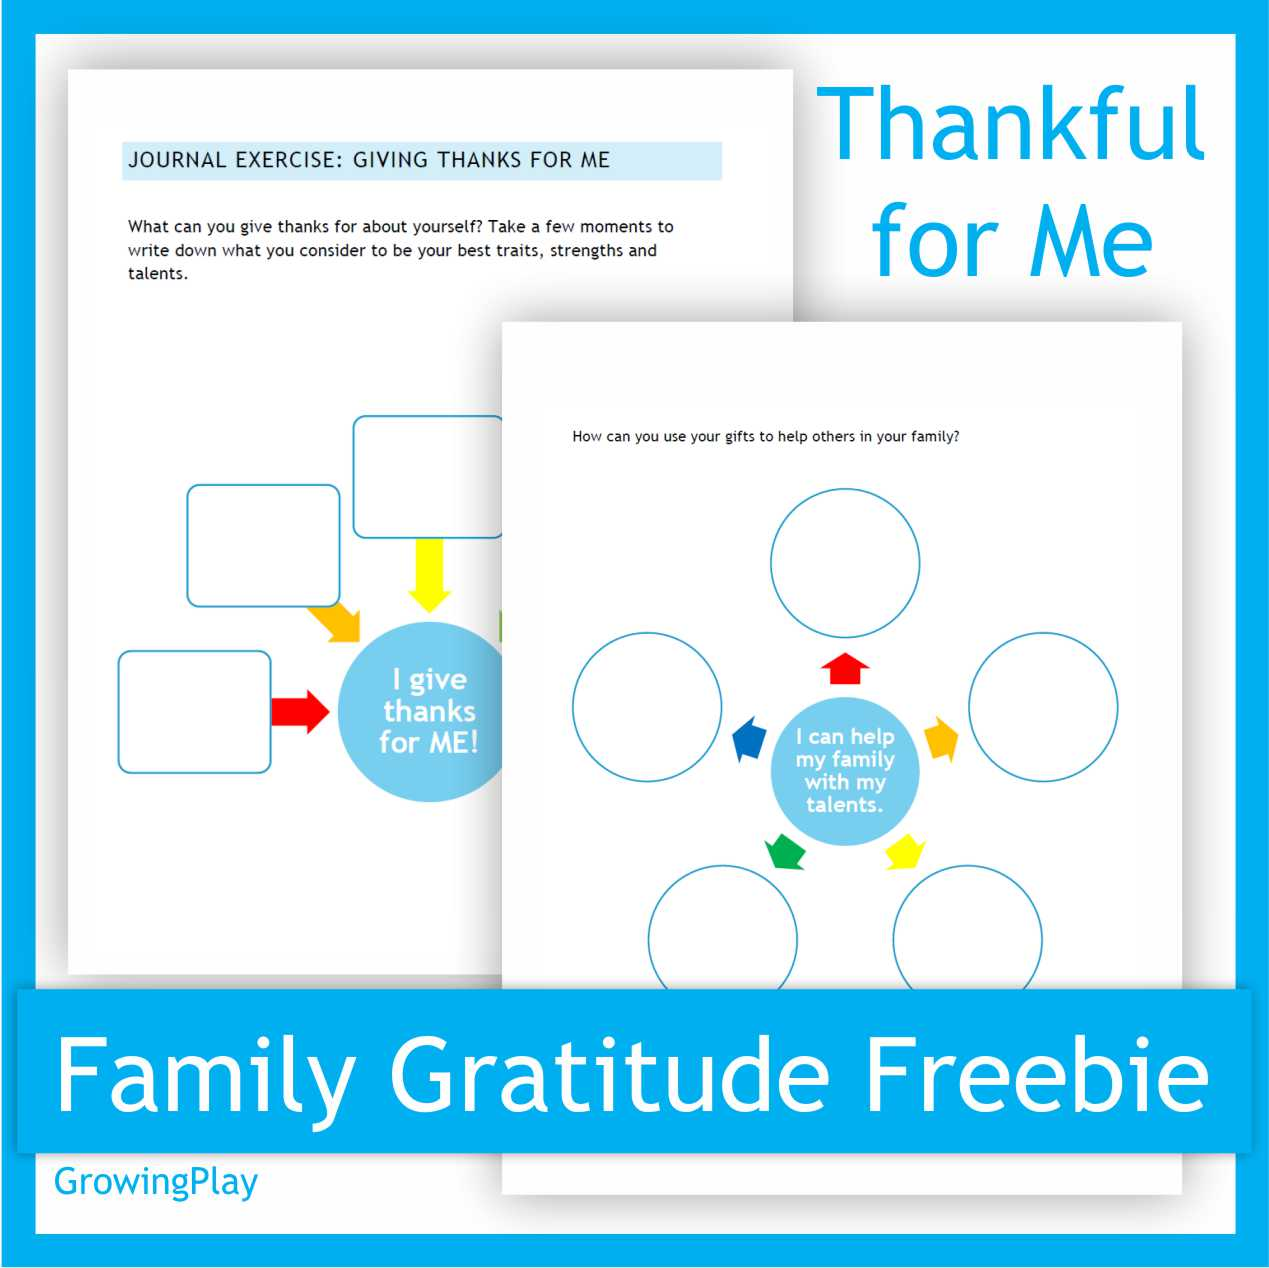 We are taking on the Family Gratitude Challenge to improve our family bond and to be grateful for all that we have.  The first lesson is titled Thankful for Me.